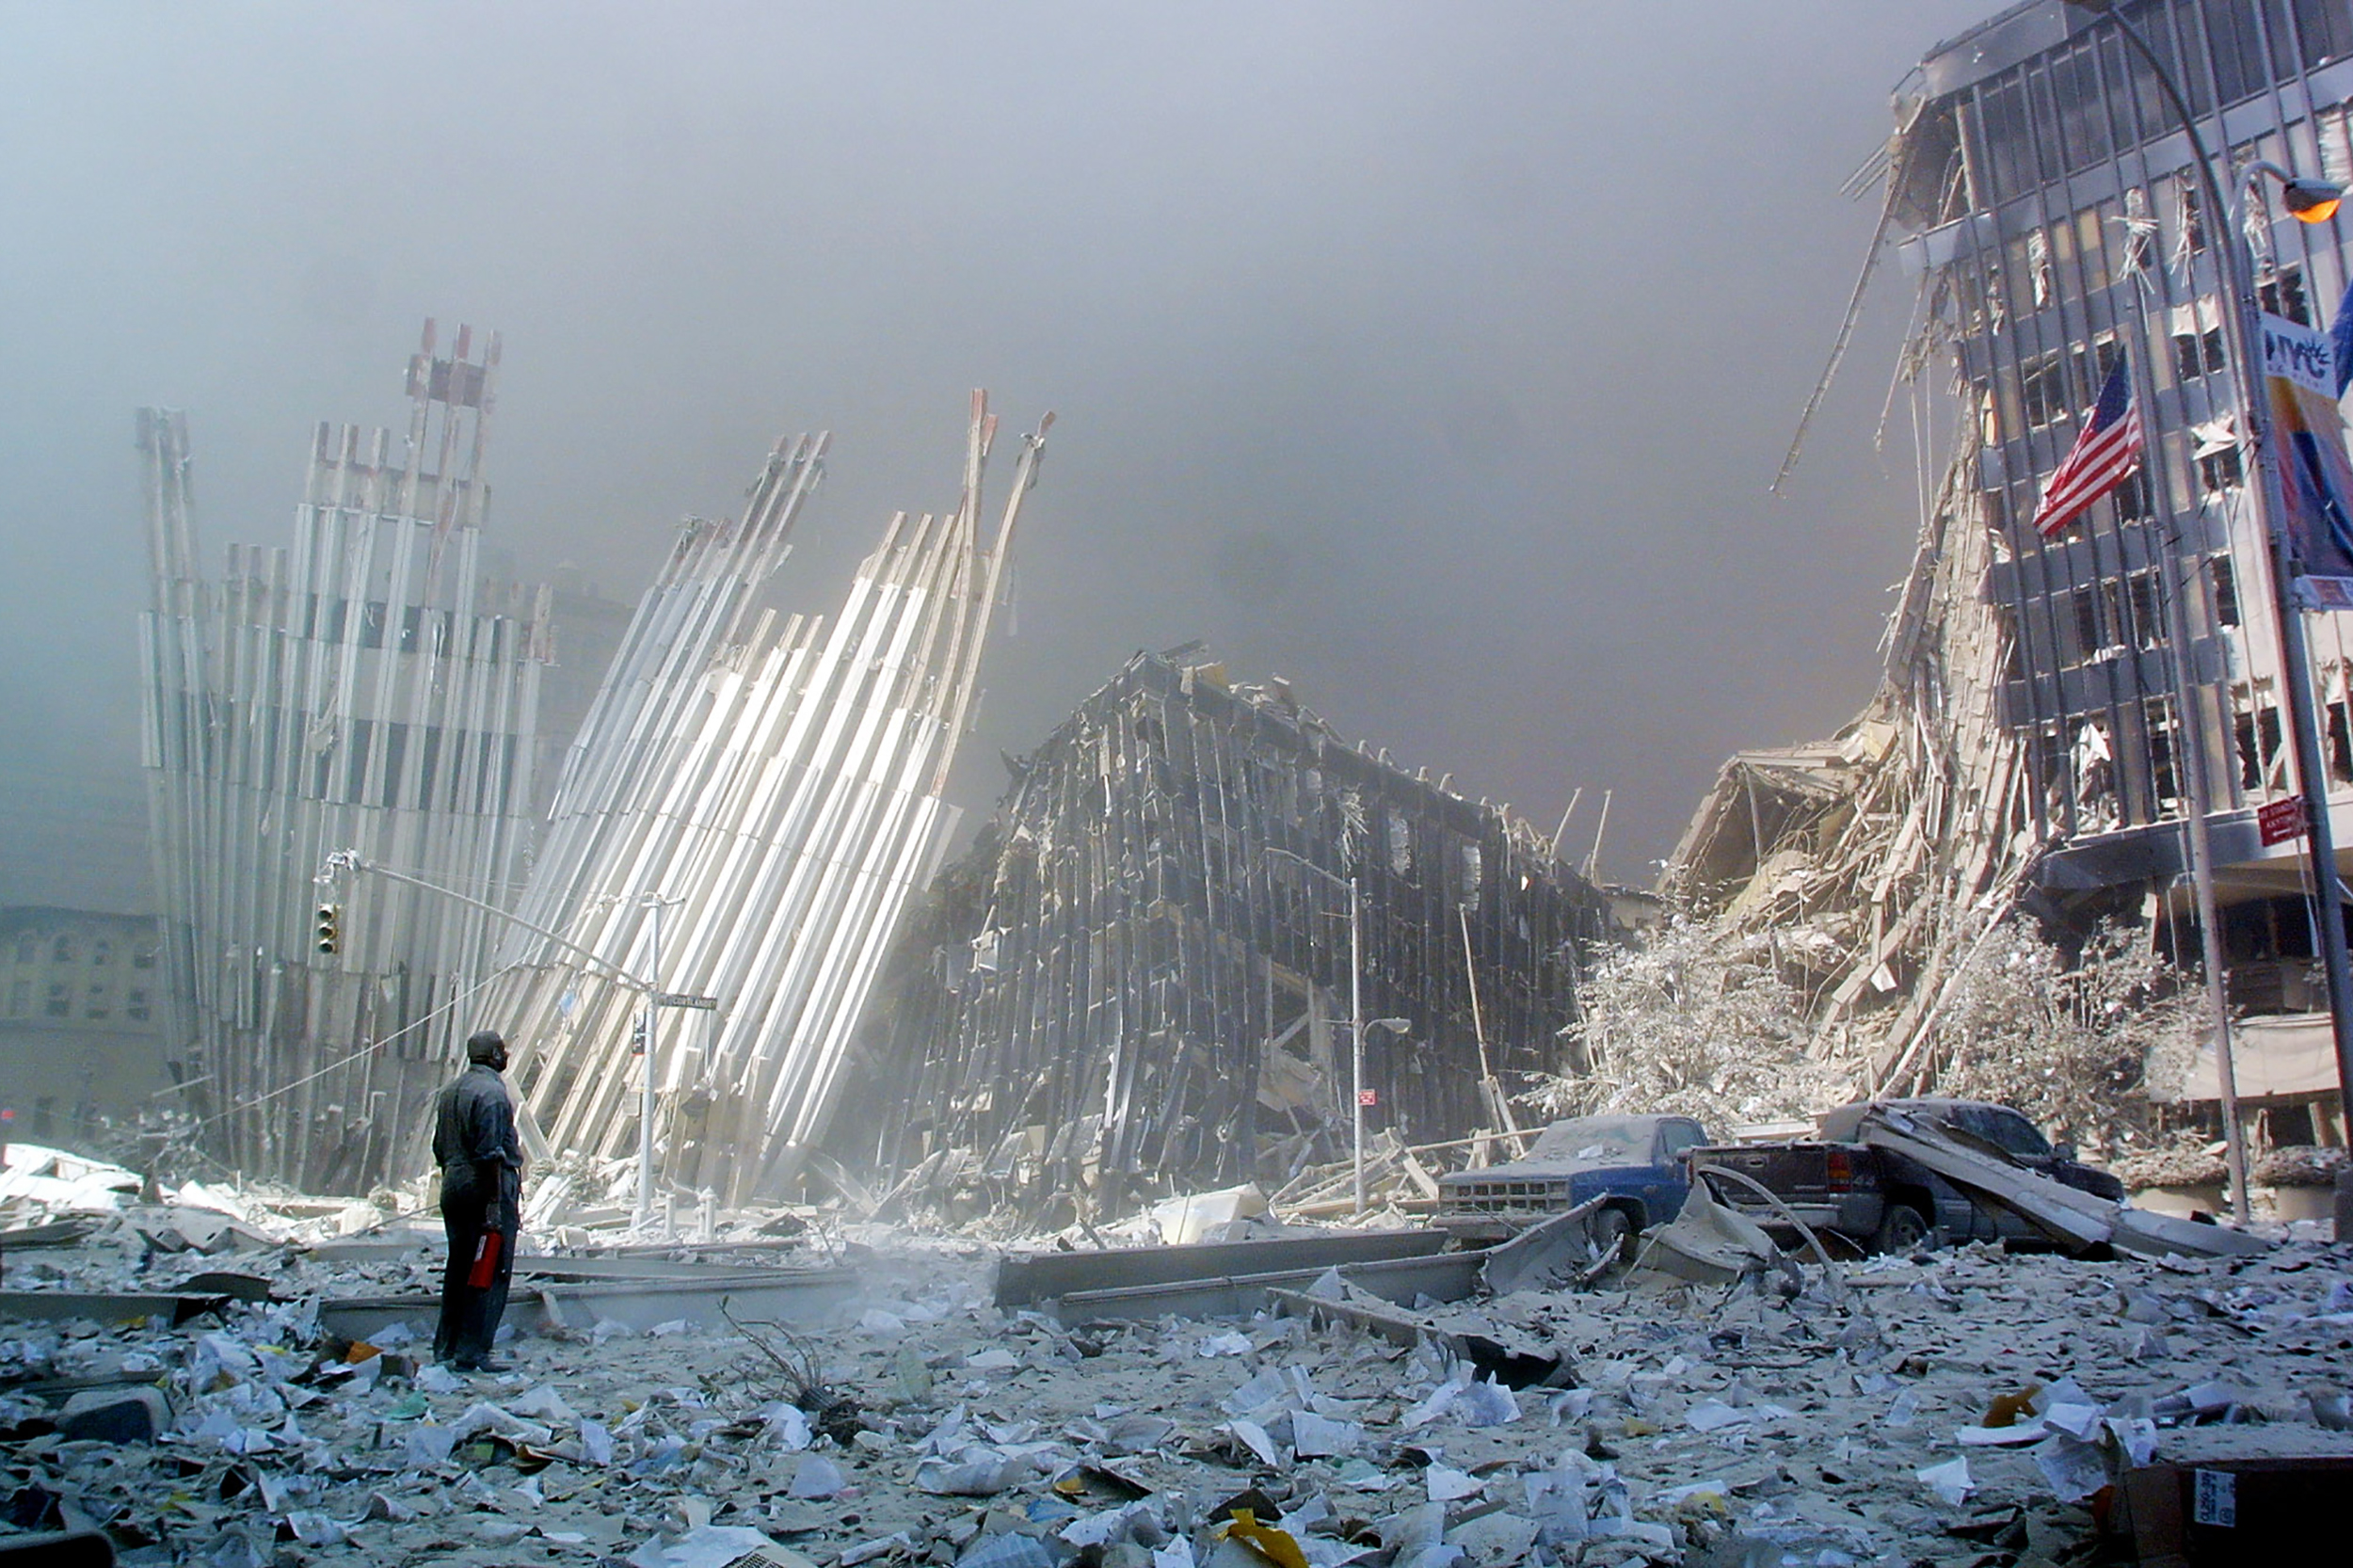 It's been two decades since 9/11. America is not the same — and never will be.